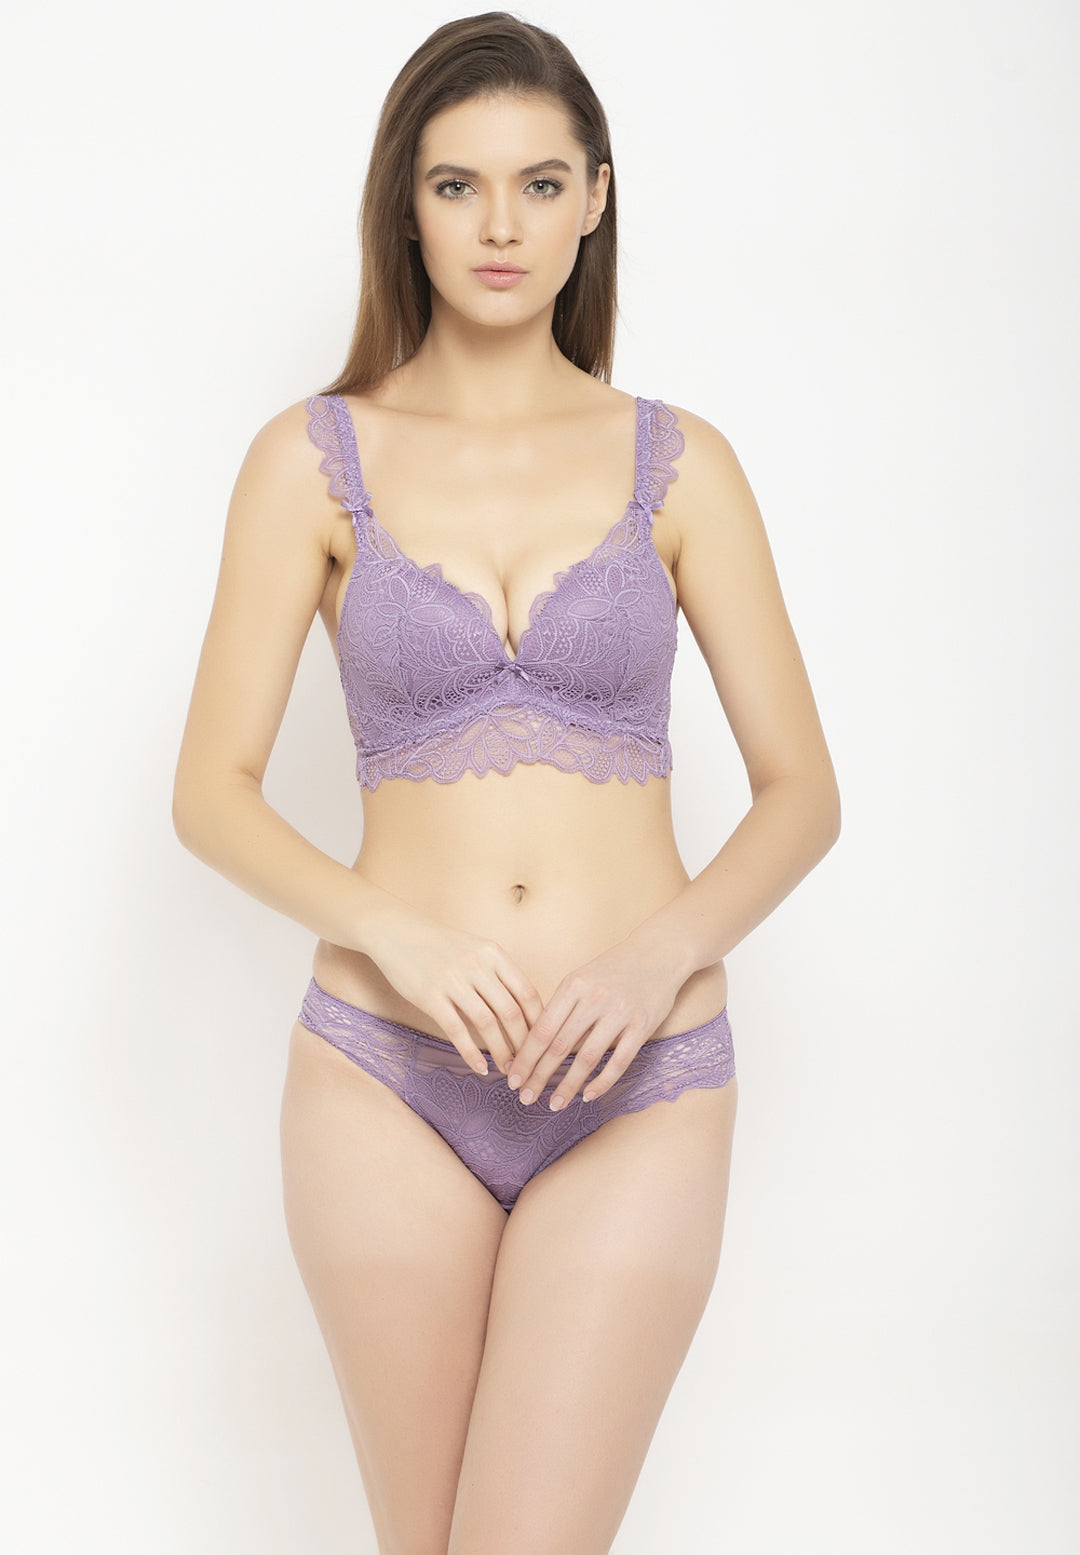 Avant-Garde Paris Padded Non-wired Lace Lingerie Set